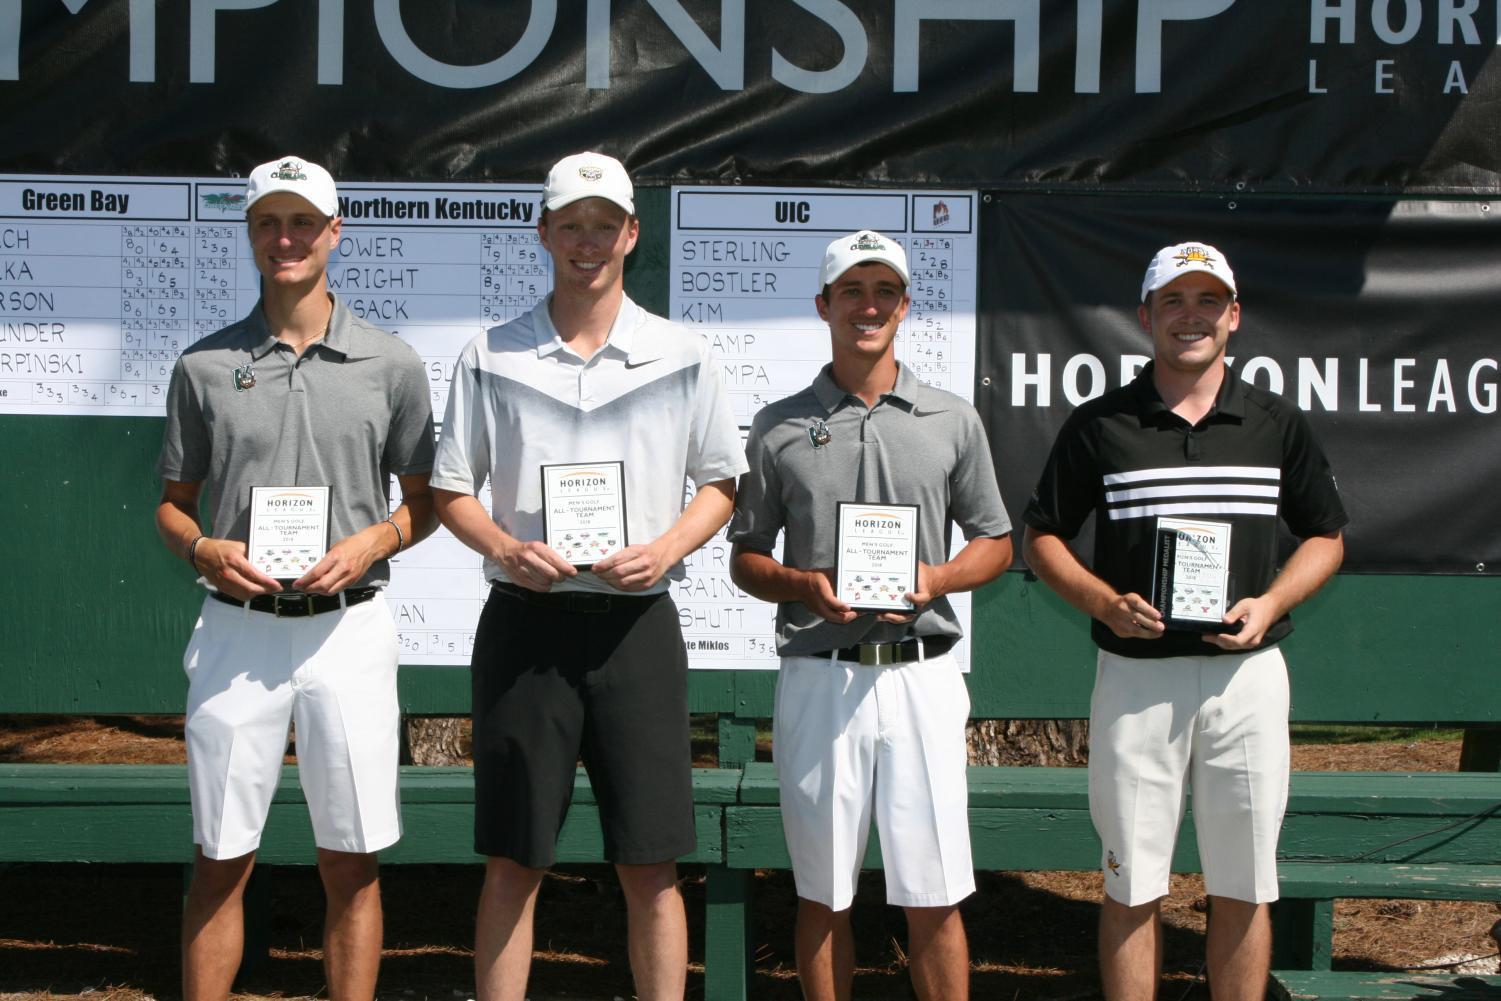 Jacob Poore stands with his fellow competitors at the end of the Horizon League golf tournament